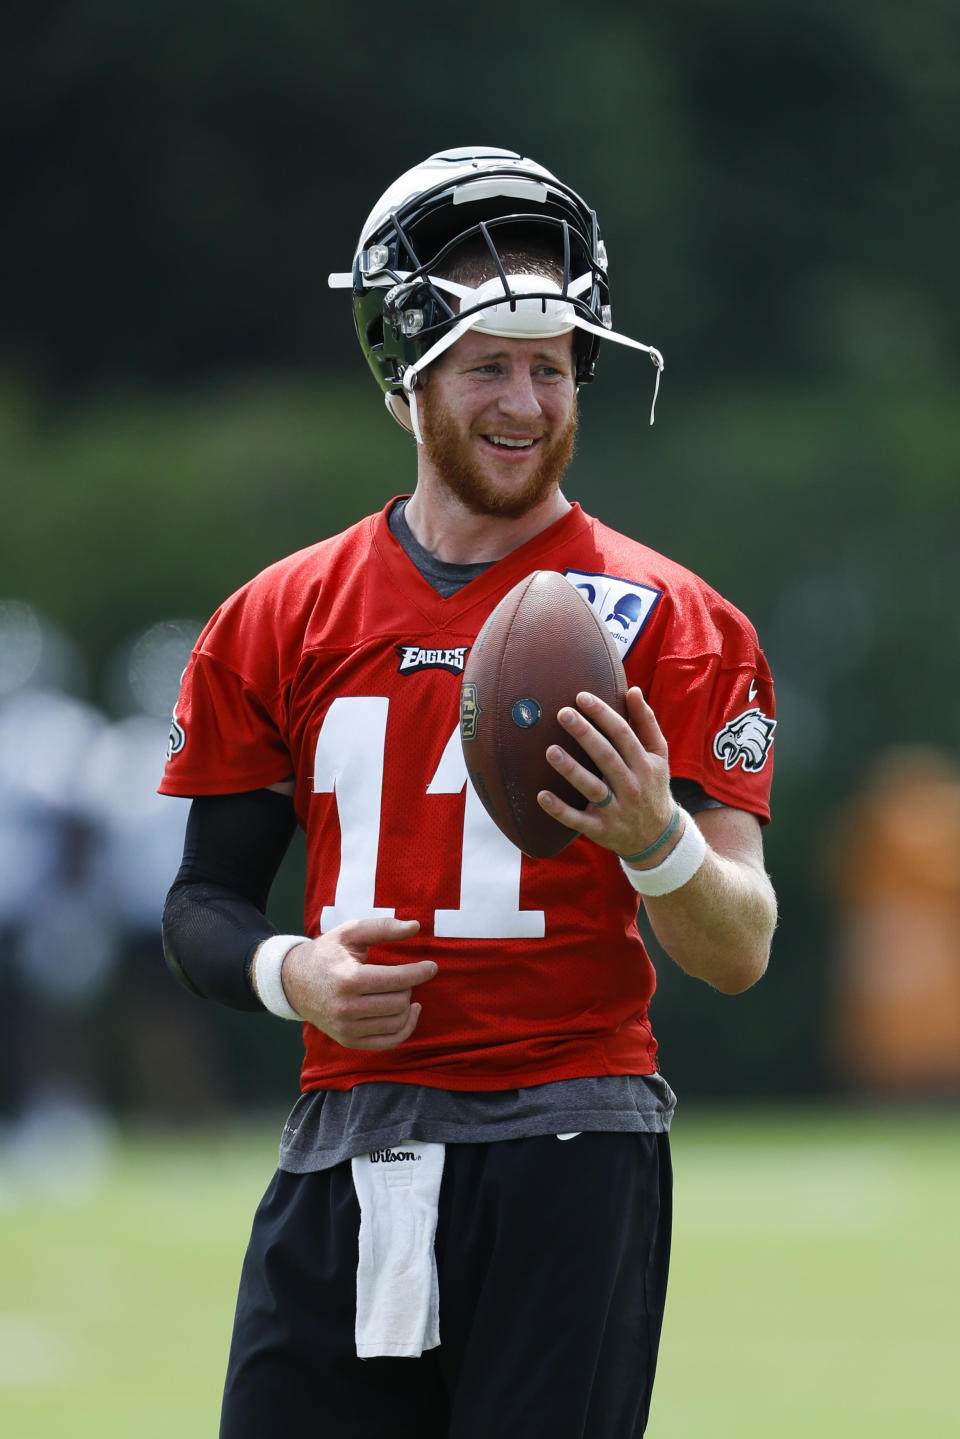 Philadelphia Eagles' Carson Wentz tosses a football during organized team activities at the NFL football team's practice facility, Wednesday, June 5, 2019, in Philadelphia. (AP Photo/Matt Slocum)